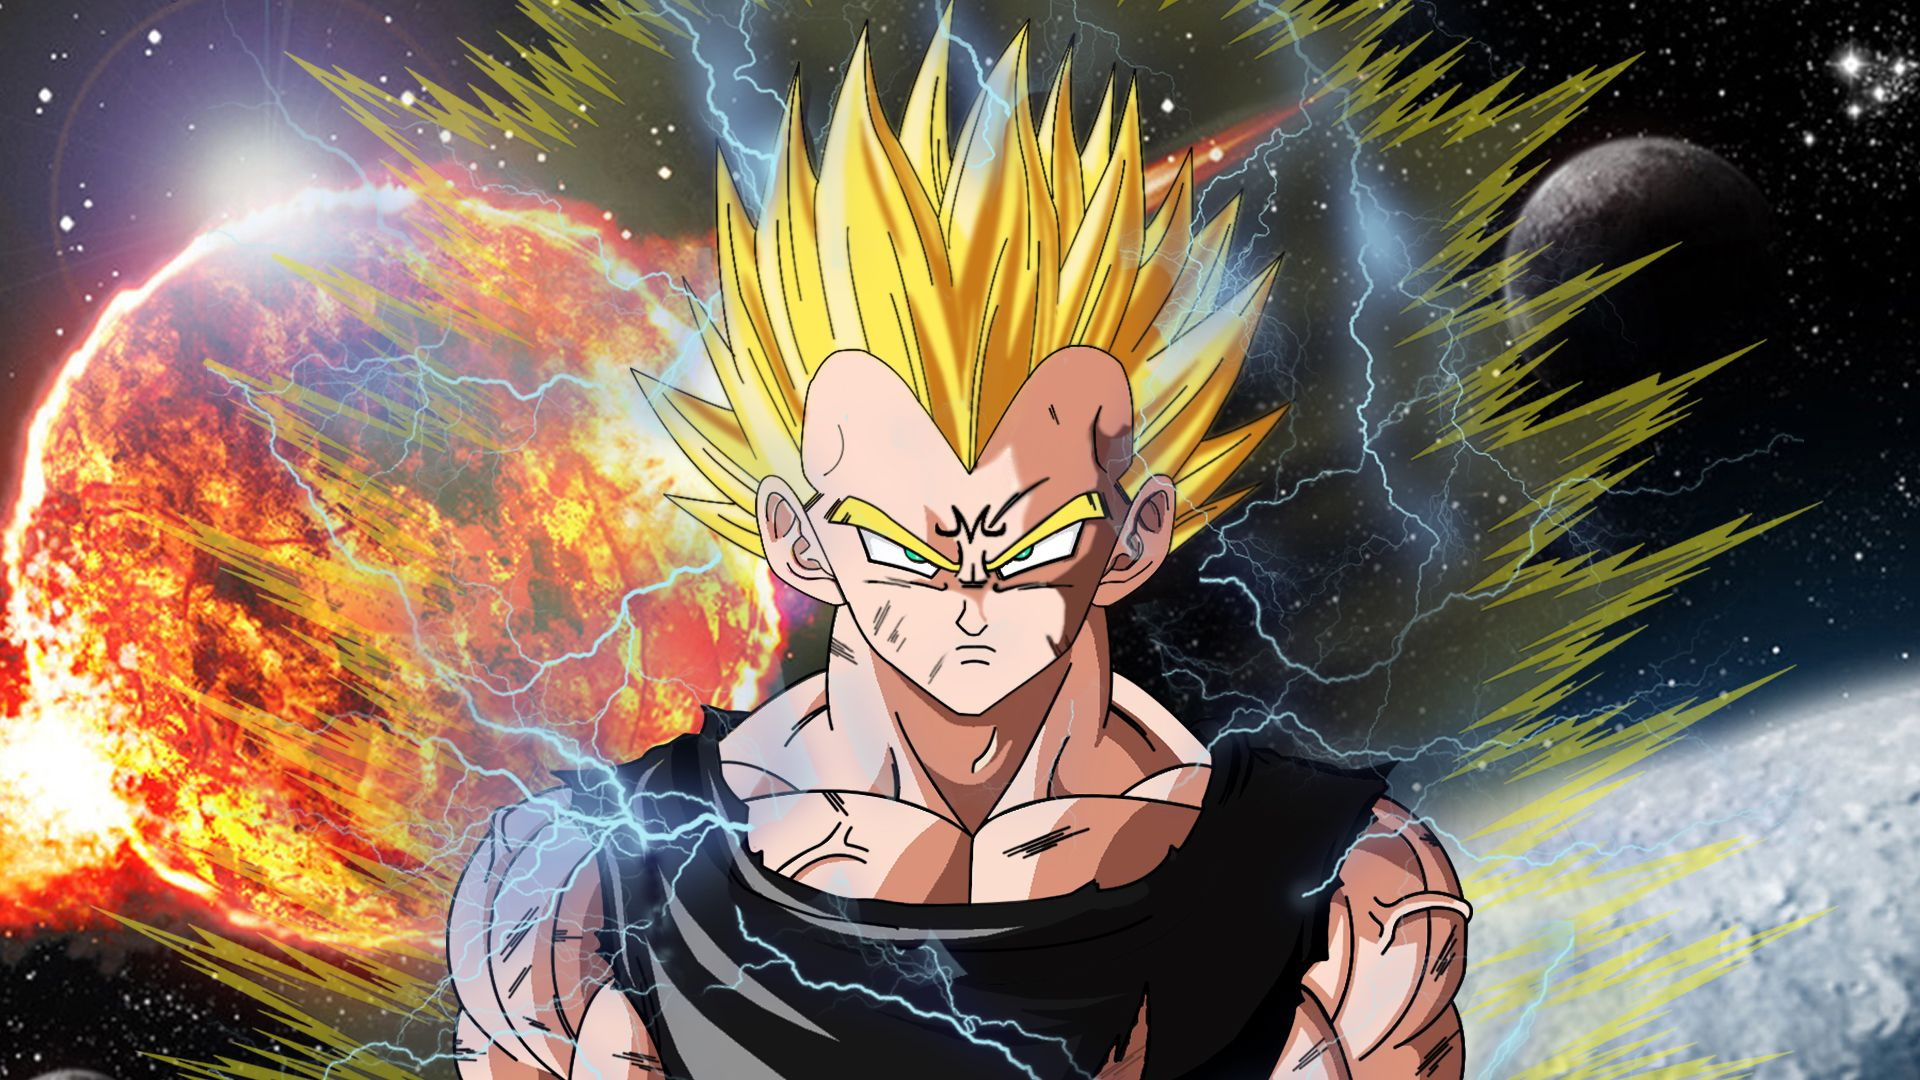 Majin Vegeta Wallpapers Top Free Majin Vegeta Backgrounds Wallpaperaccess